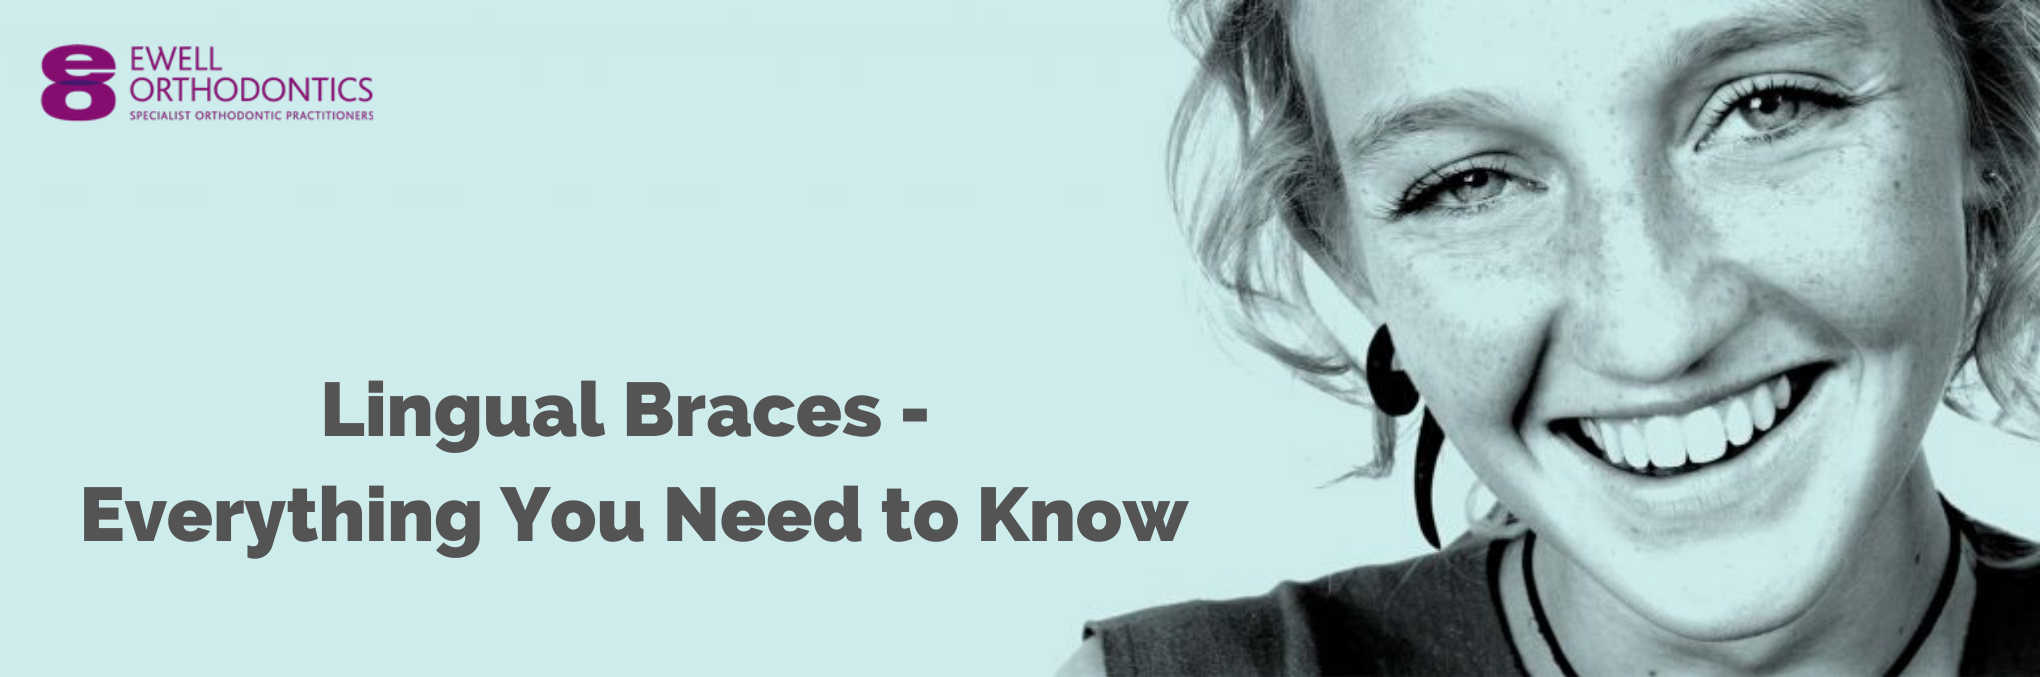 Lingual braces: everything you need to know